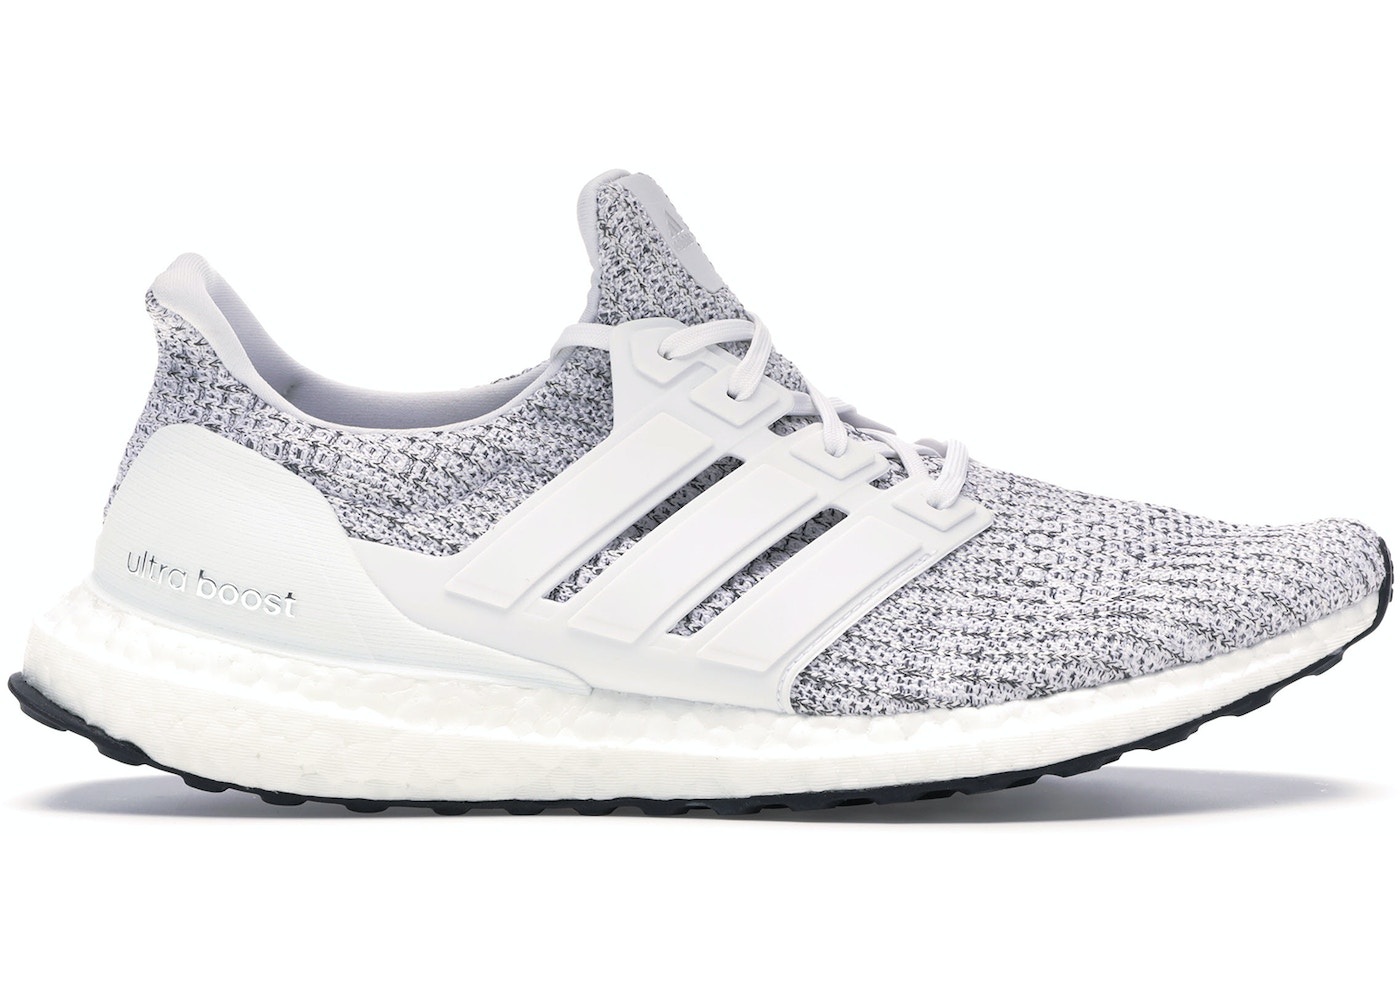 new style 94fe5 bd679 adidas Ultra Boost 4.0 Non Dye Cloud White